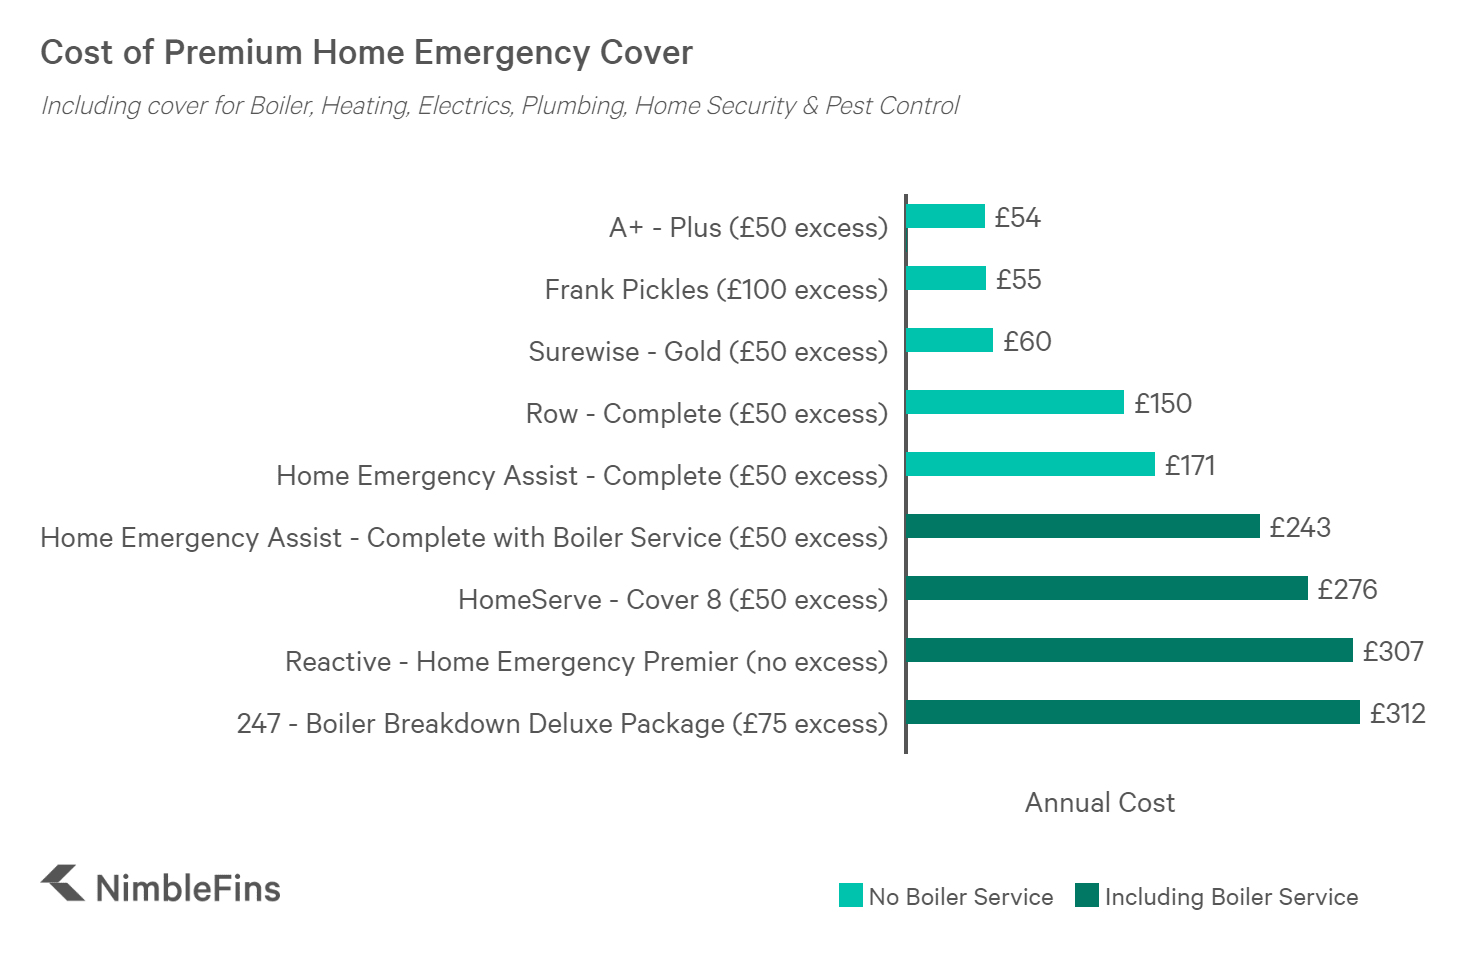 Cost of Premium Home Emergency Cover